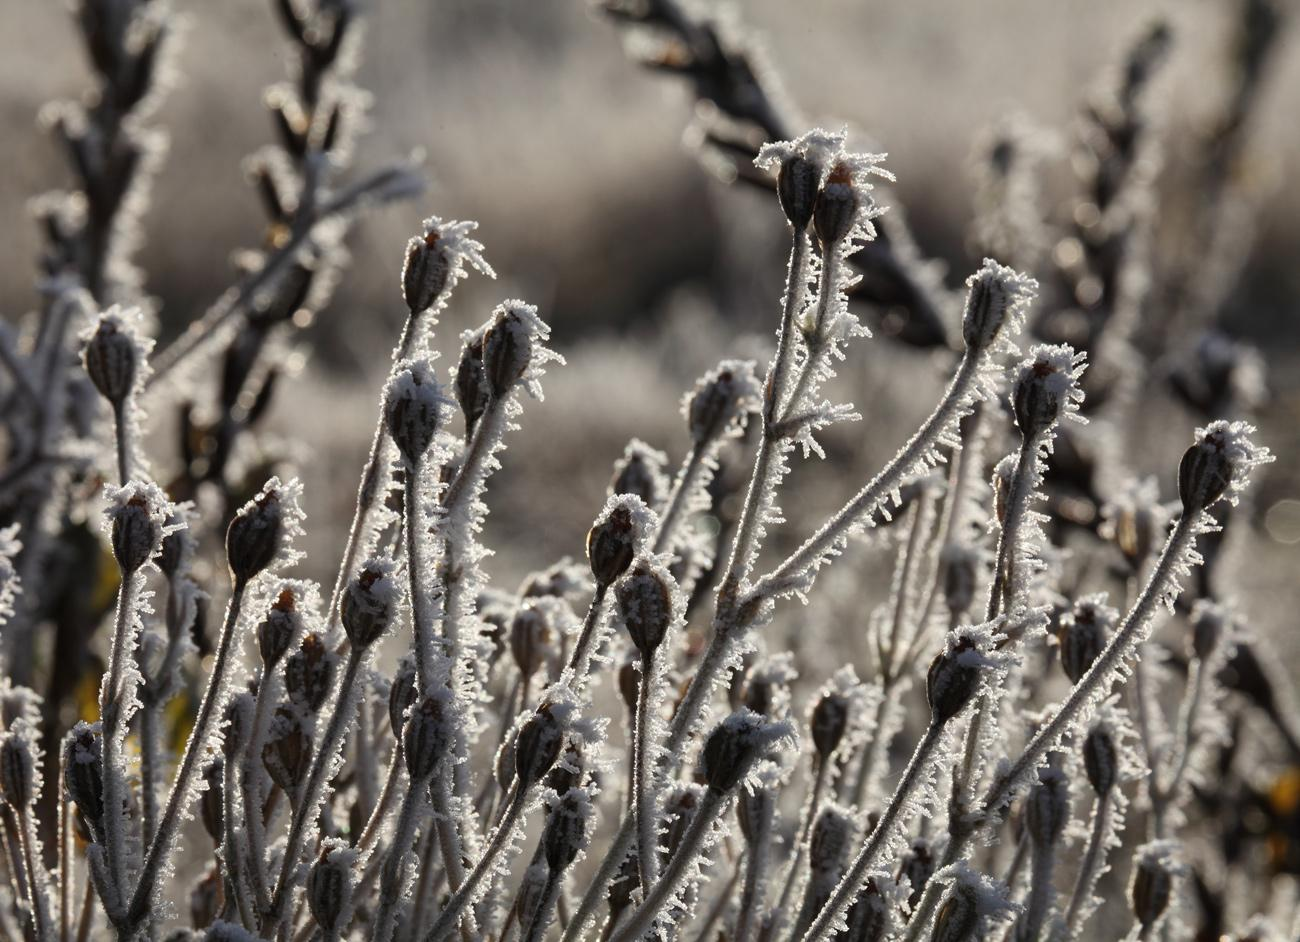 Seedheads in the frost.